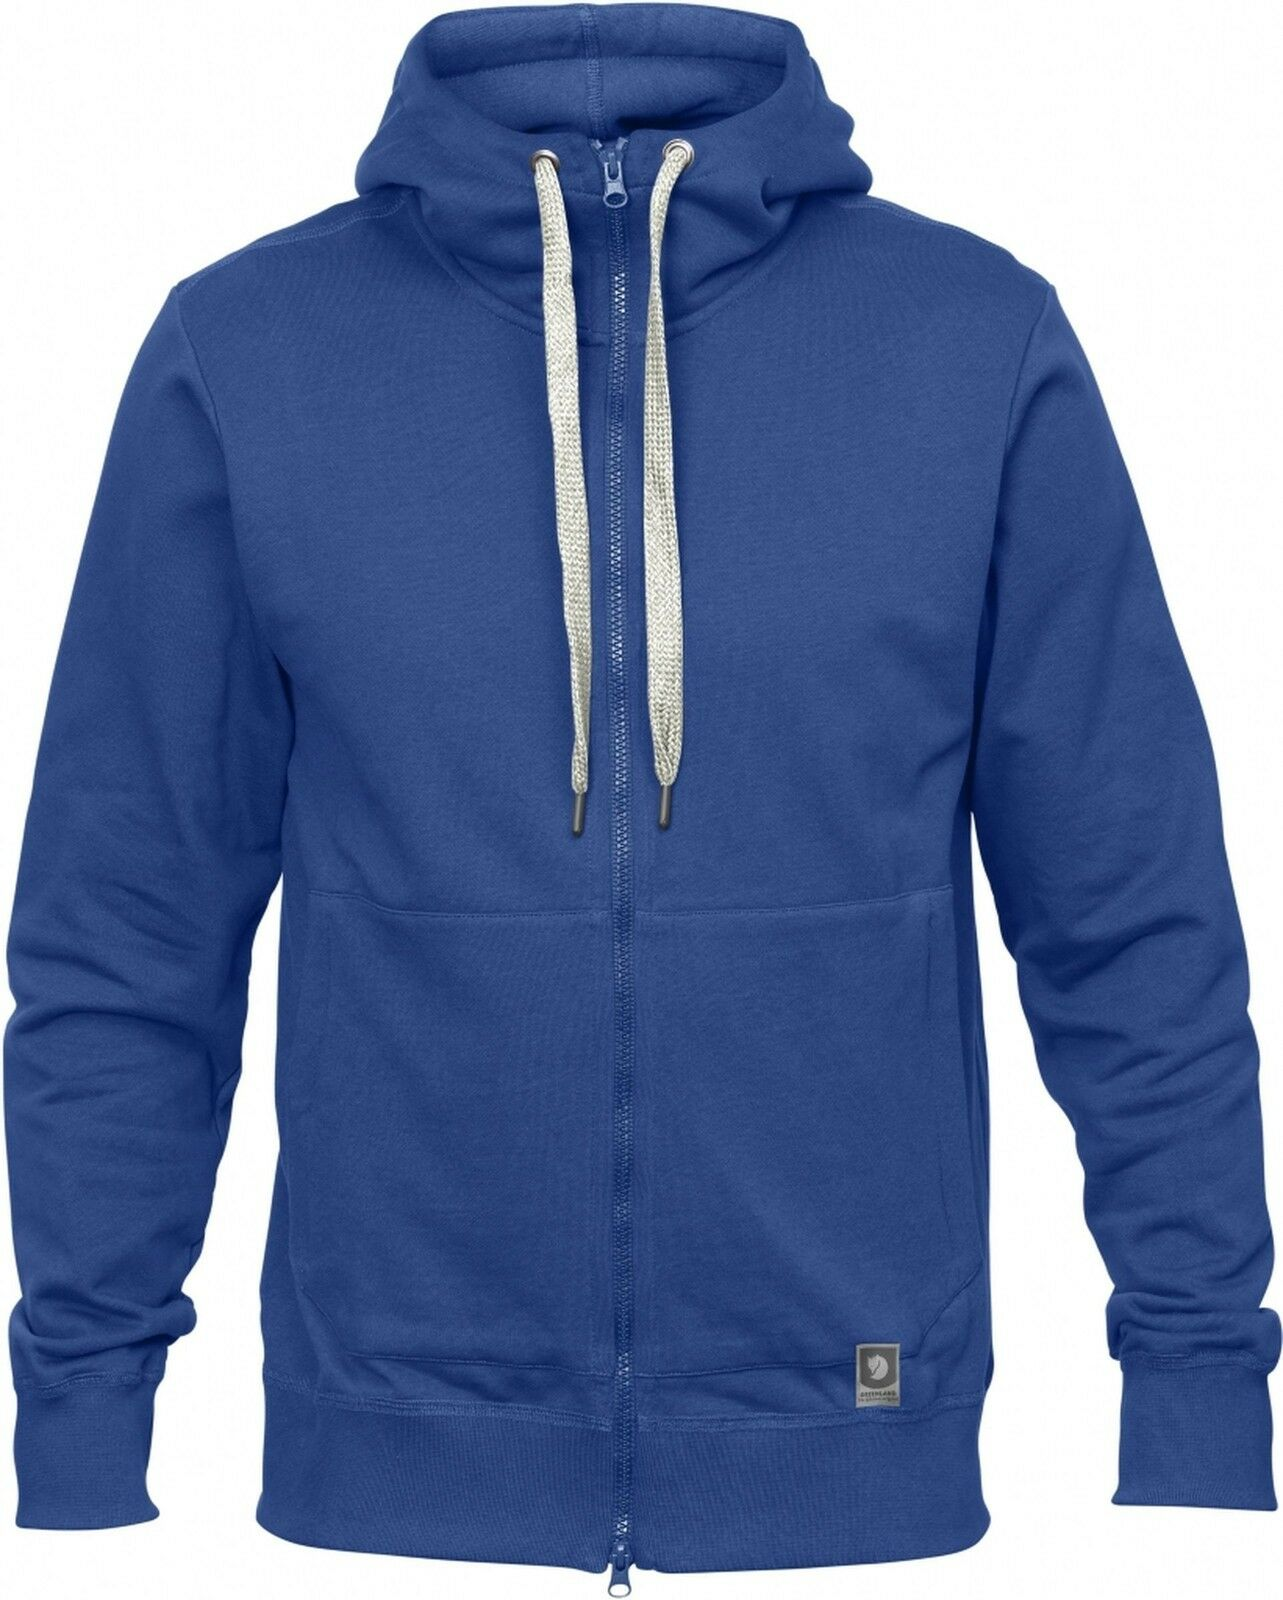 Fjäll Räven Greenland Zip Hoodie M Size XL Deep bluee   free and fast delivery available